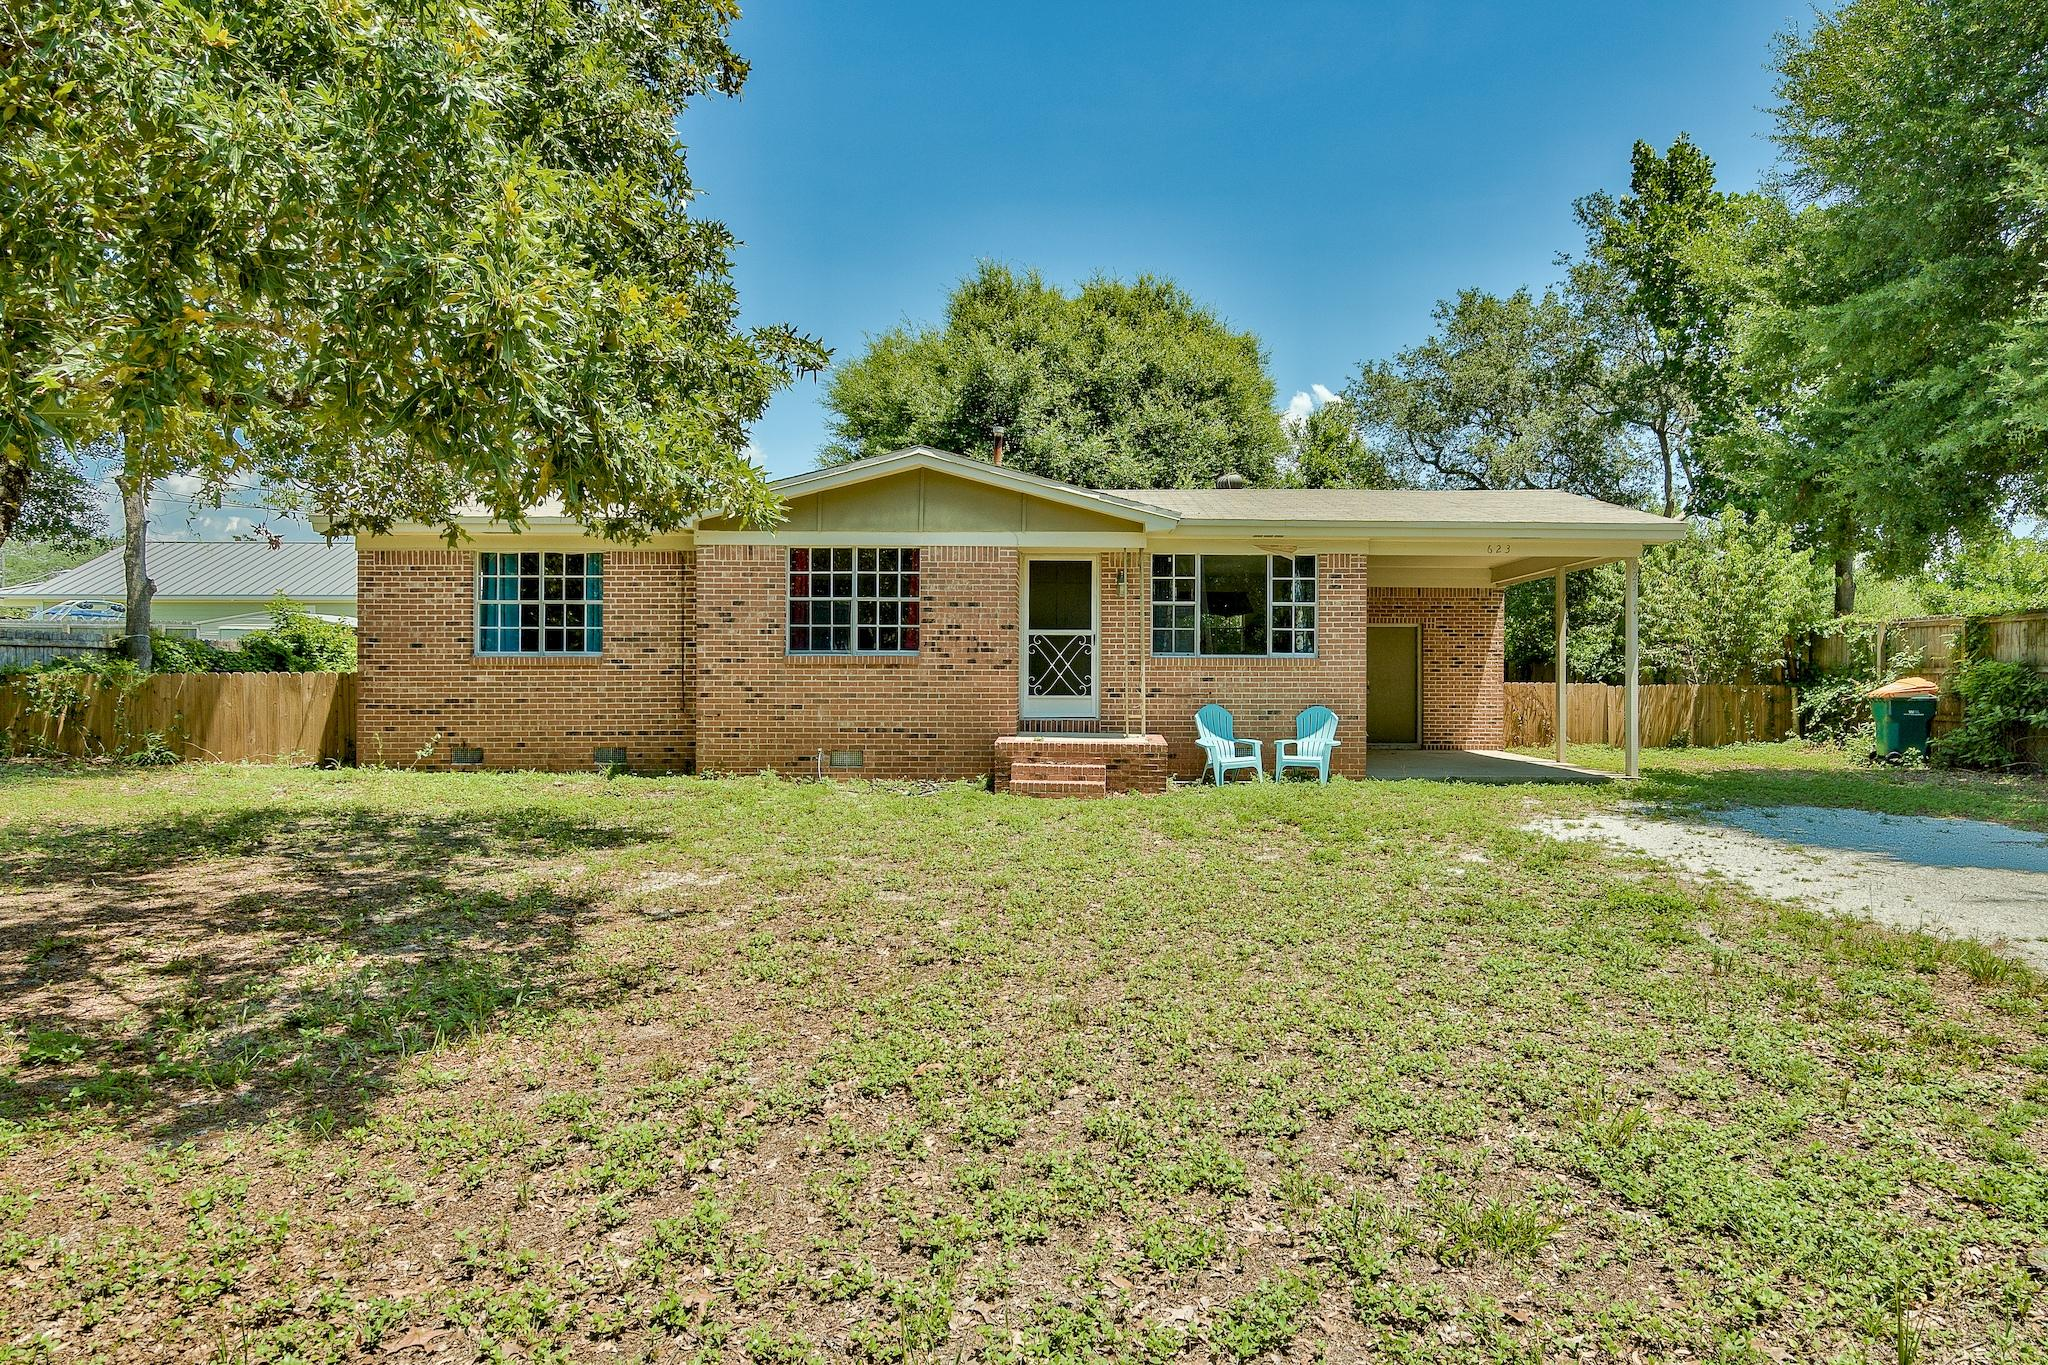 A deal this good in the Destin area will not last long! Charming 3-bedroom brick house with an attached single car carport located on a large lot in the heart of Destin. No HOA! Perfectly located near premier shopping, dining and beautiful white sand beaches. The house is only one block from the Destin Elementary School and just minutes from Destin Harbor. The renovated kitchen has a new tile floor, granite counters, added backsplash, new cabinets and new Whirlpool appliances. The bathroom features a granite shower & counter as well as a new tile floor. The home boasts real hardwood floors throughout. Enjoy the fenced backyard & front yard has beautiful trees and plenty of space for additional parking. You could even park a boat & trailer and have Joe's Bayou boat launch nearby. This home has an incredible fenced-in backyard large enough to add a patio/deck, shed, pool or even plant your own garden. The large backyard is a great place for the children and pets to run around and play! This home has a lot to offer and would make a perfect first-time home or rental property.